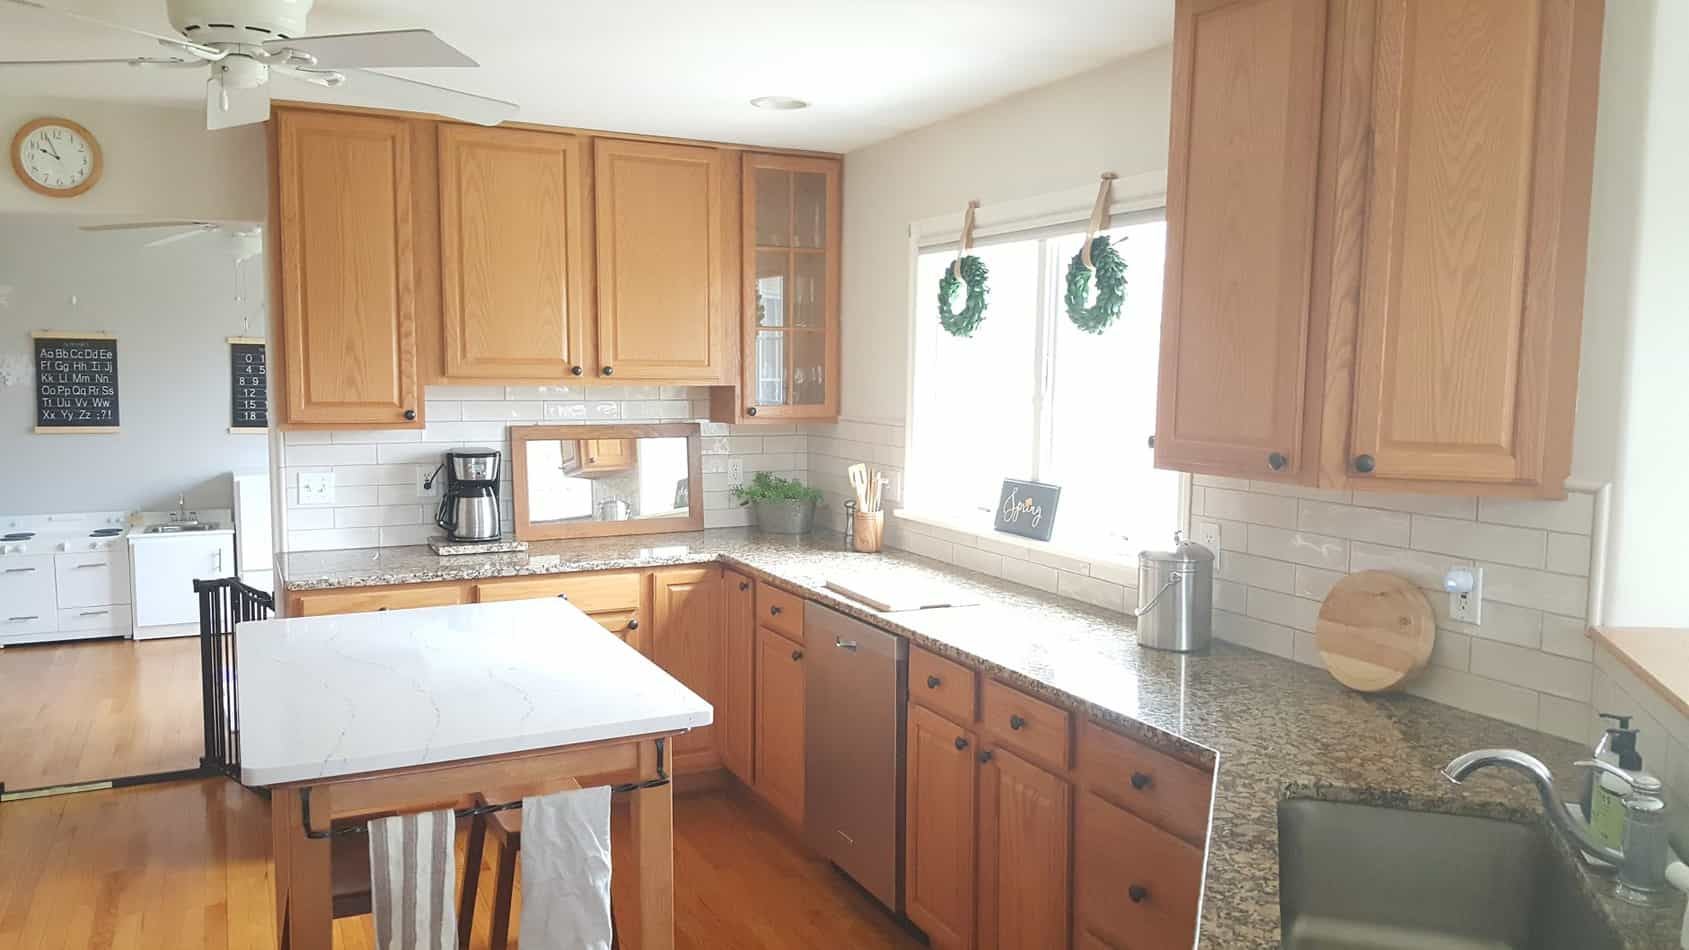 Update Kitchen w/ Oak Cabinets w/out painting